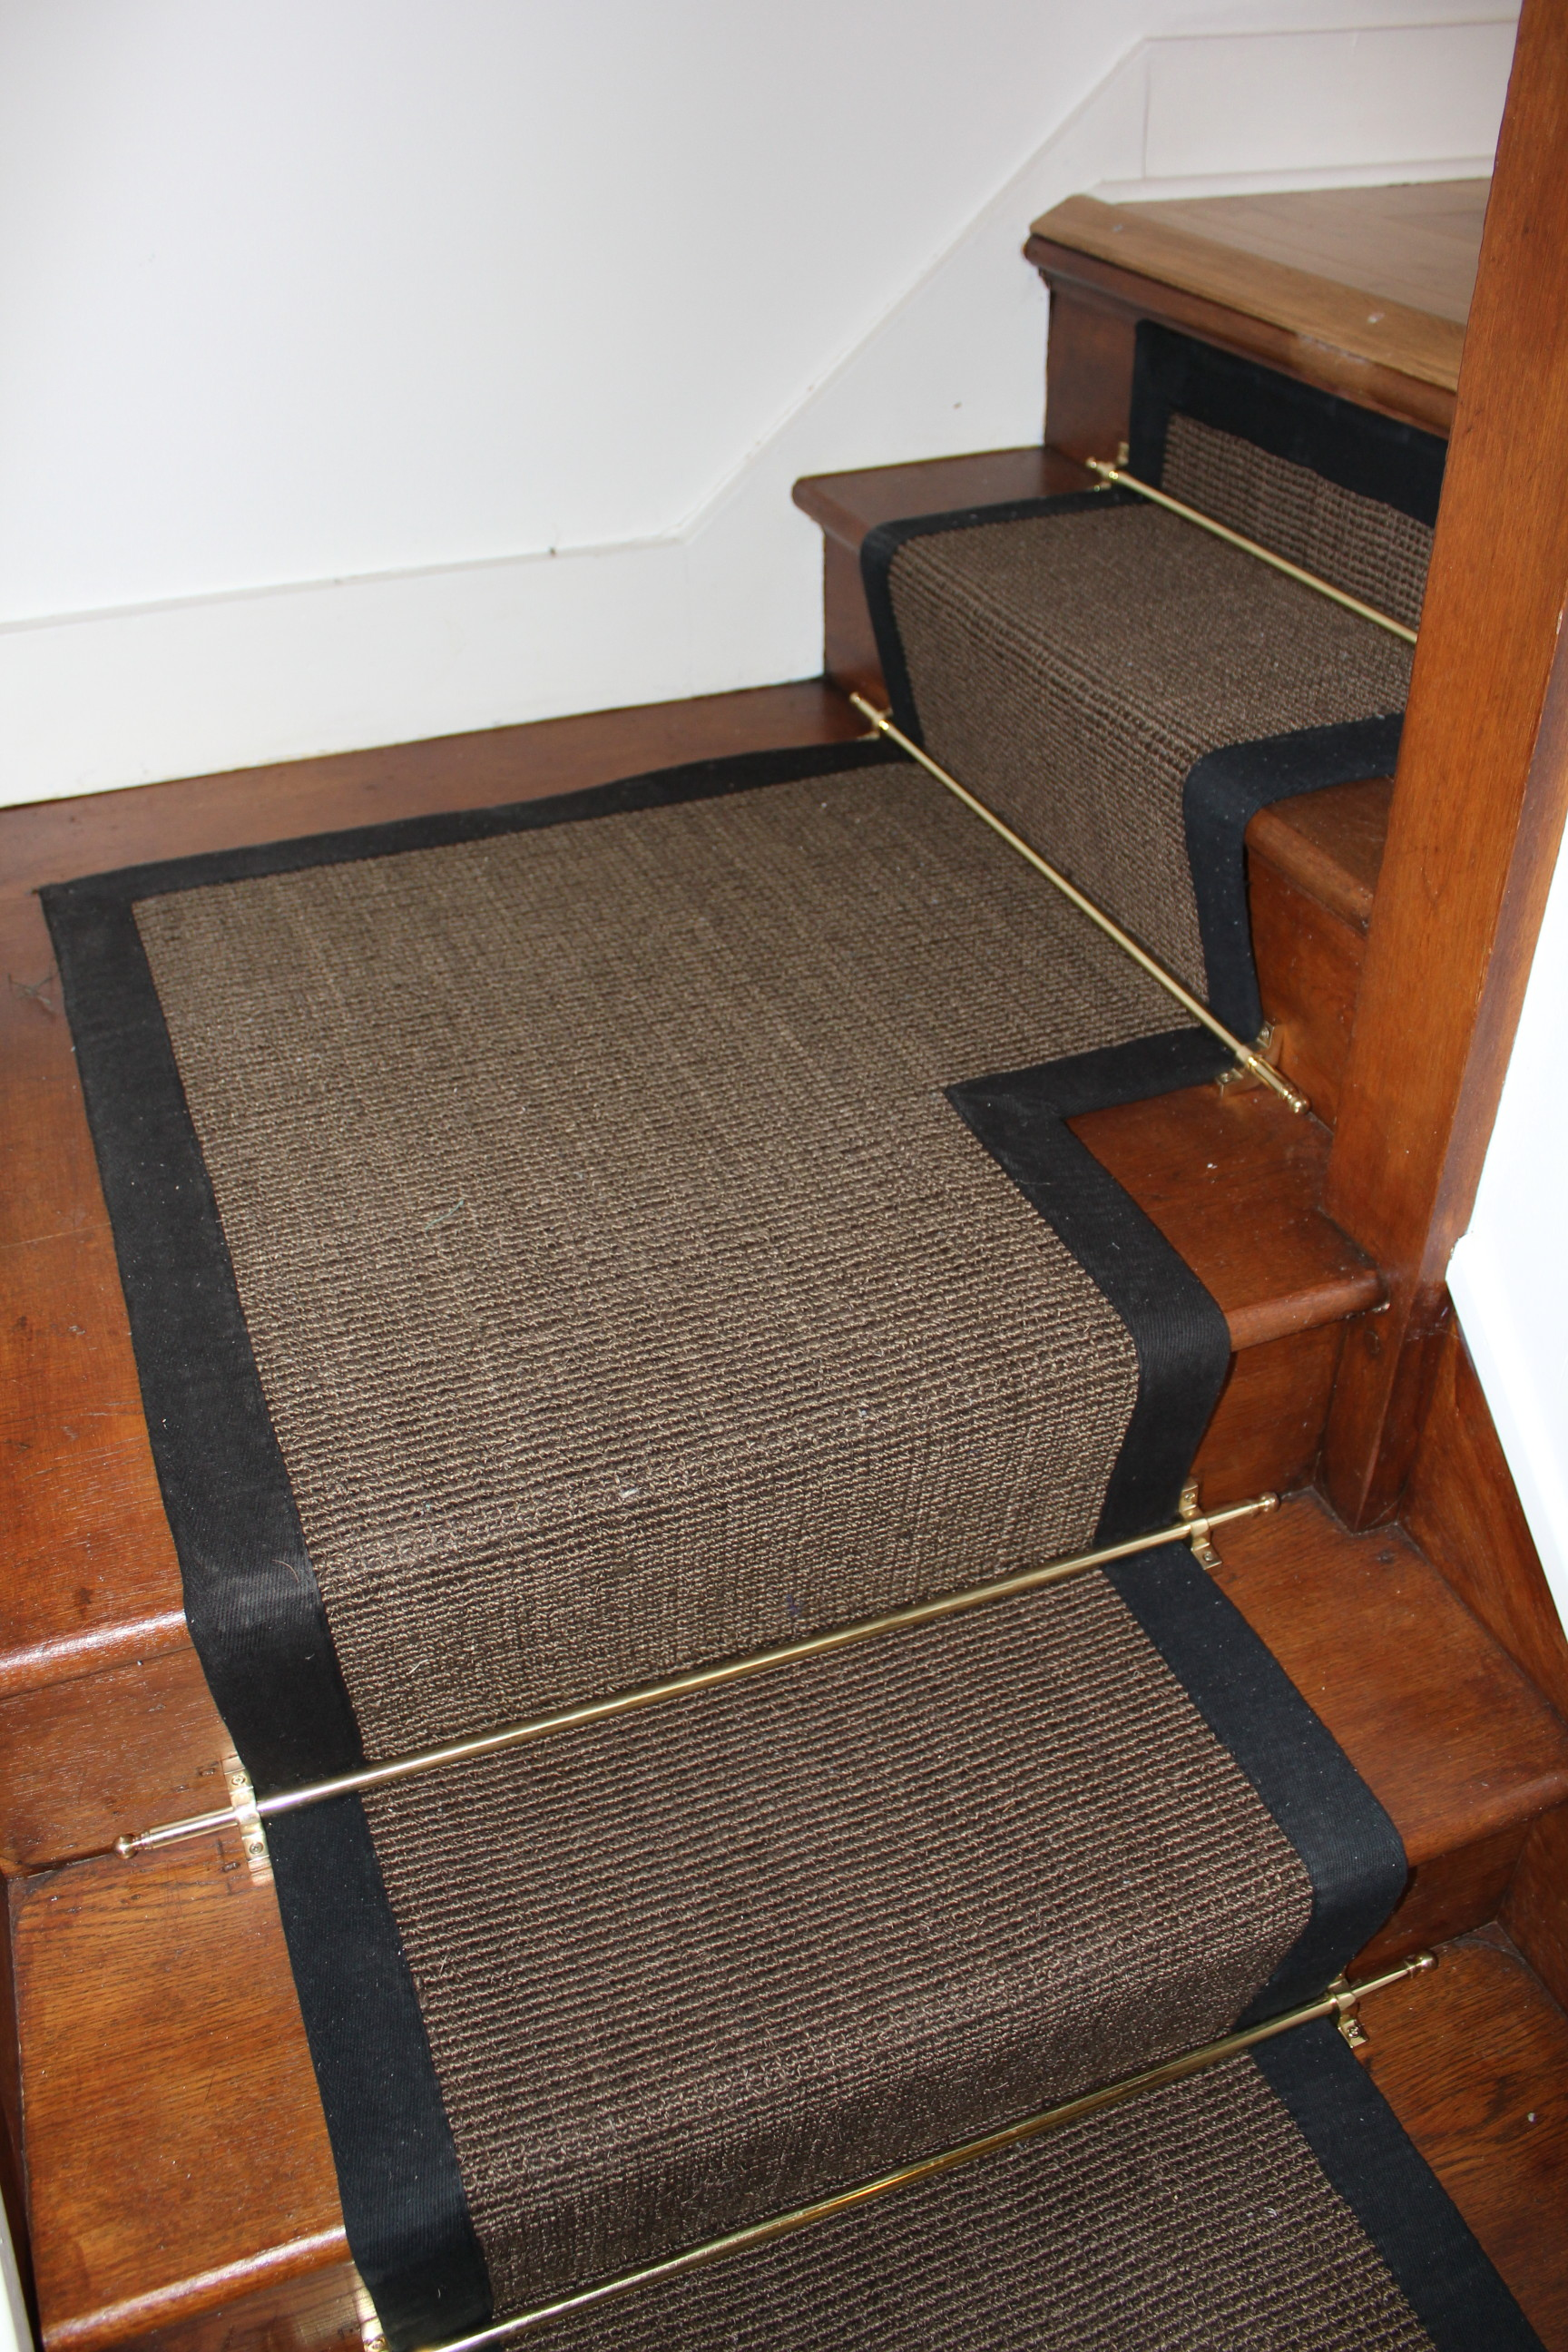 Fanciful Carpet Runner Goodworksfurniture Carpet Carpet Runner On Carpet Carpet Runner Landing Poqxumi Some Uses Stairs Stairs Nylon Or Polyester Carpet Stairs Uk houzz 01 Best Carpet For Stairs